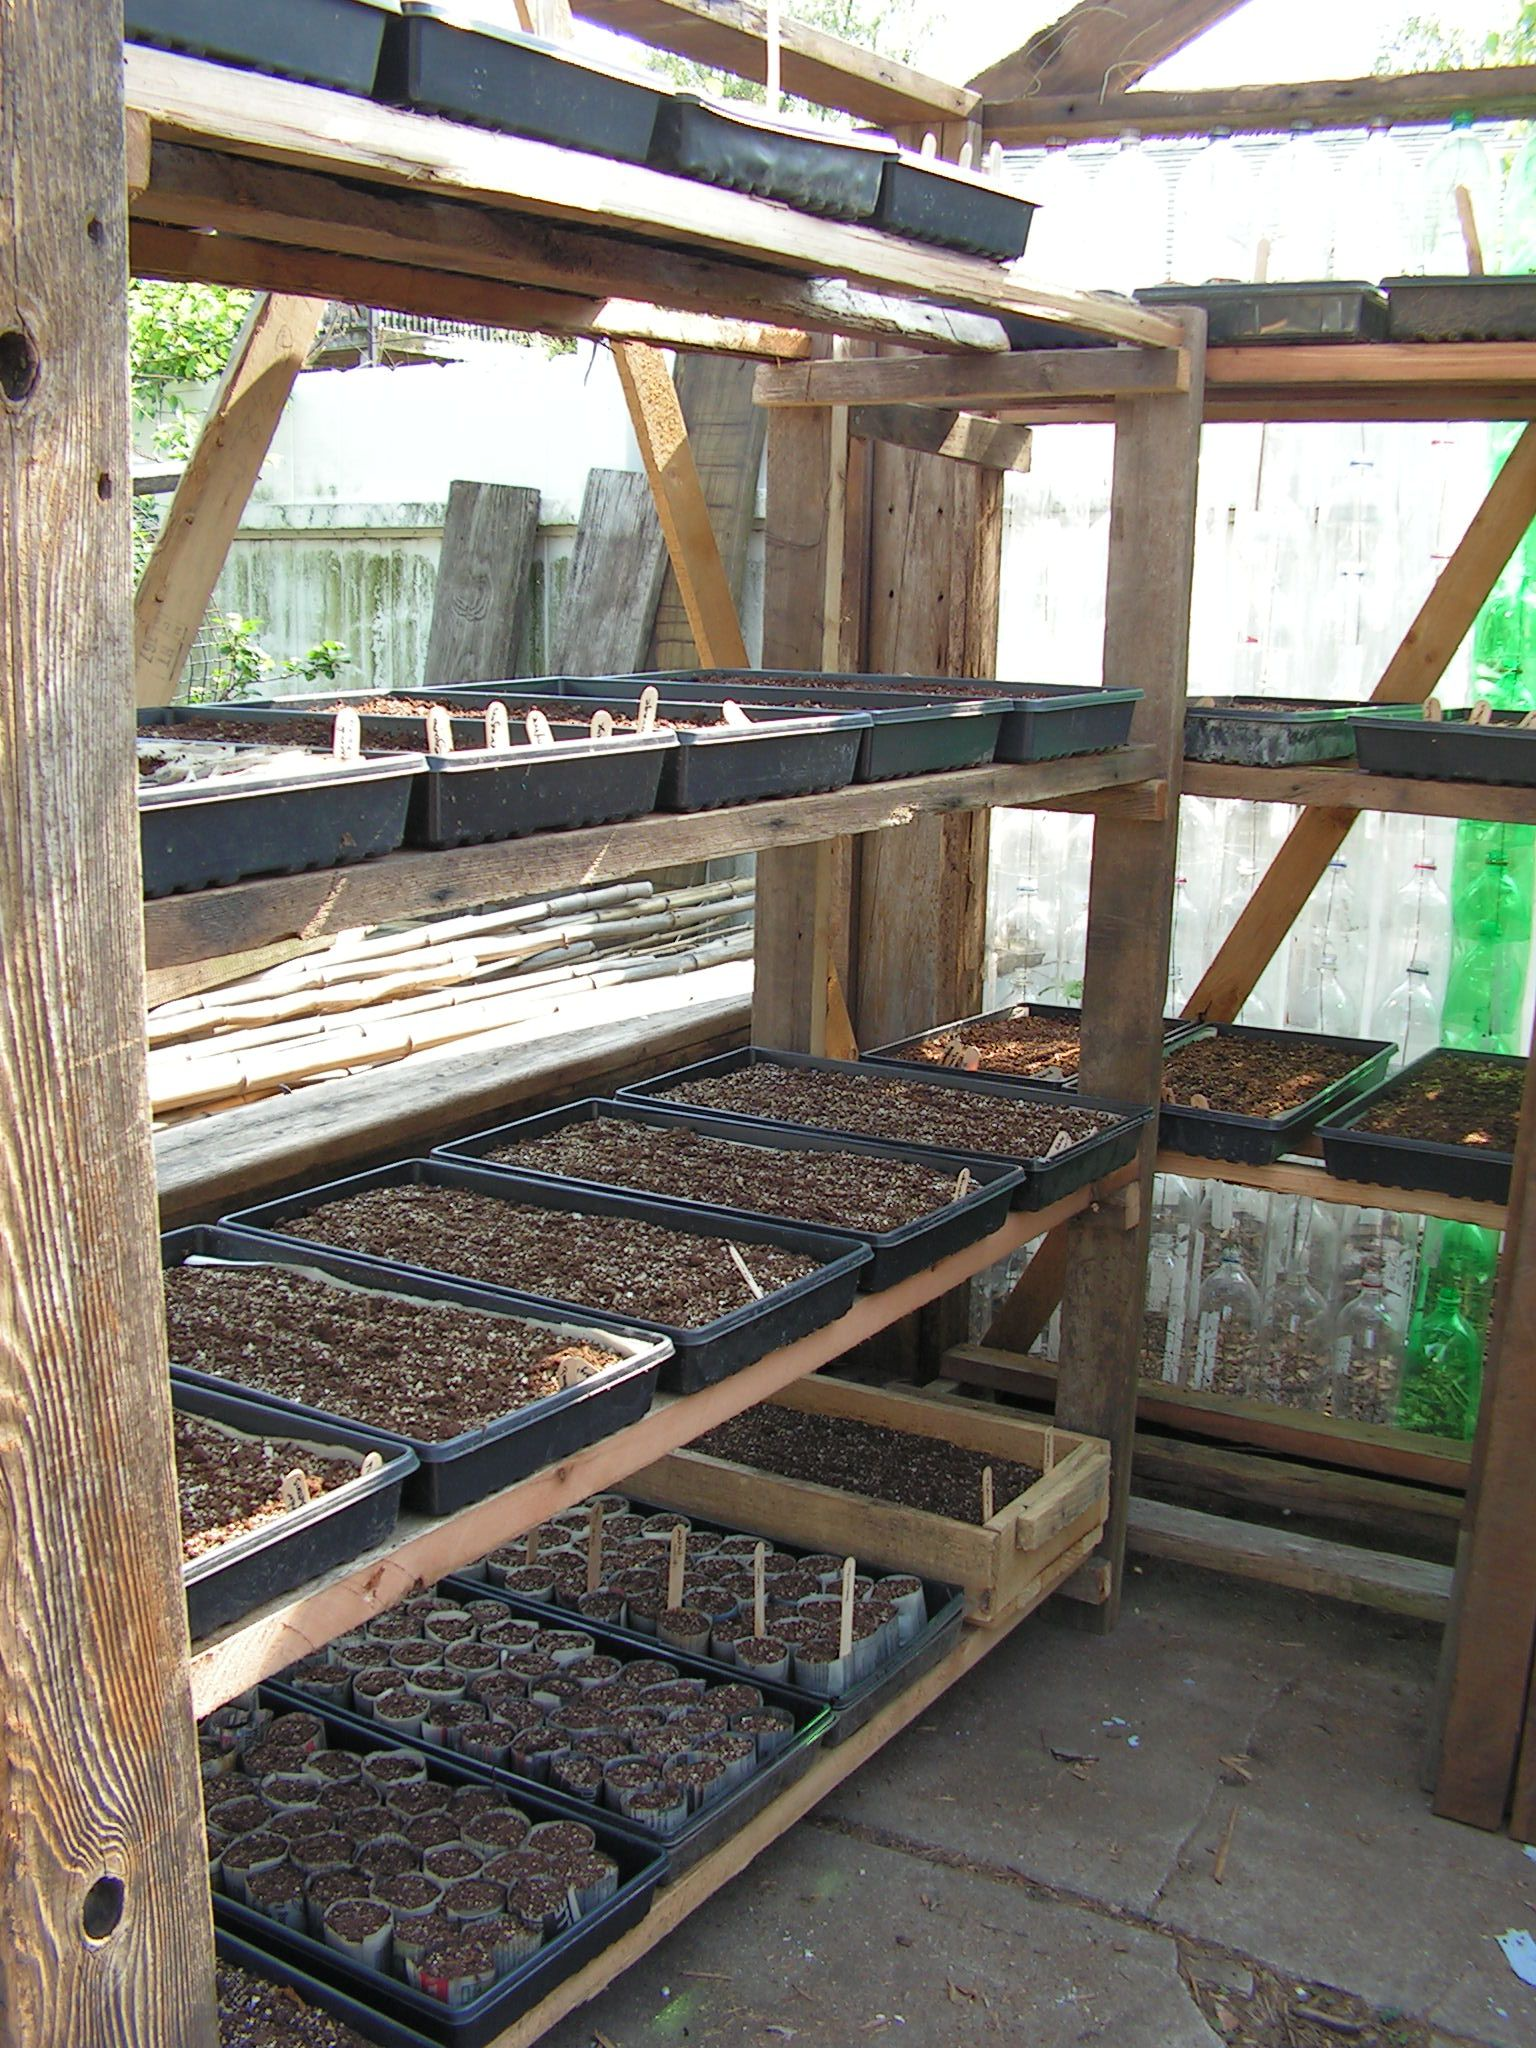 Tips for choosing a place and making a foundation under a greenhouse